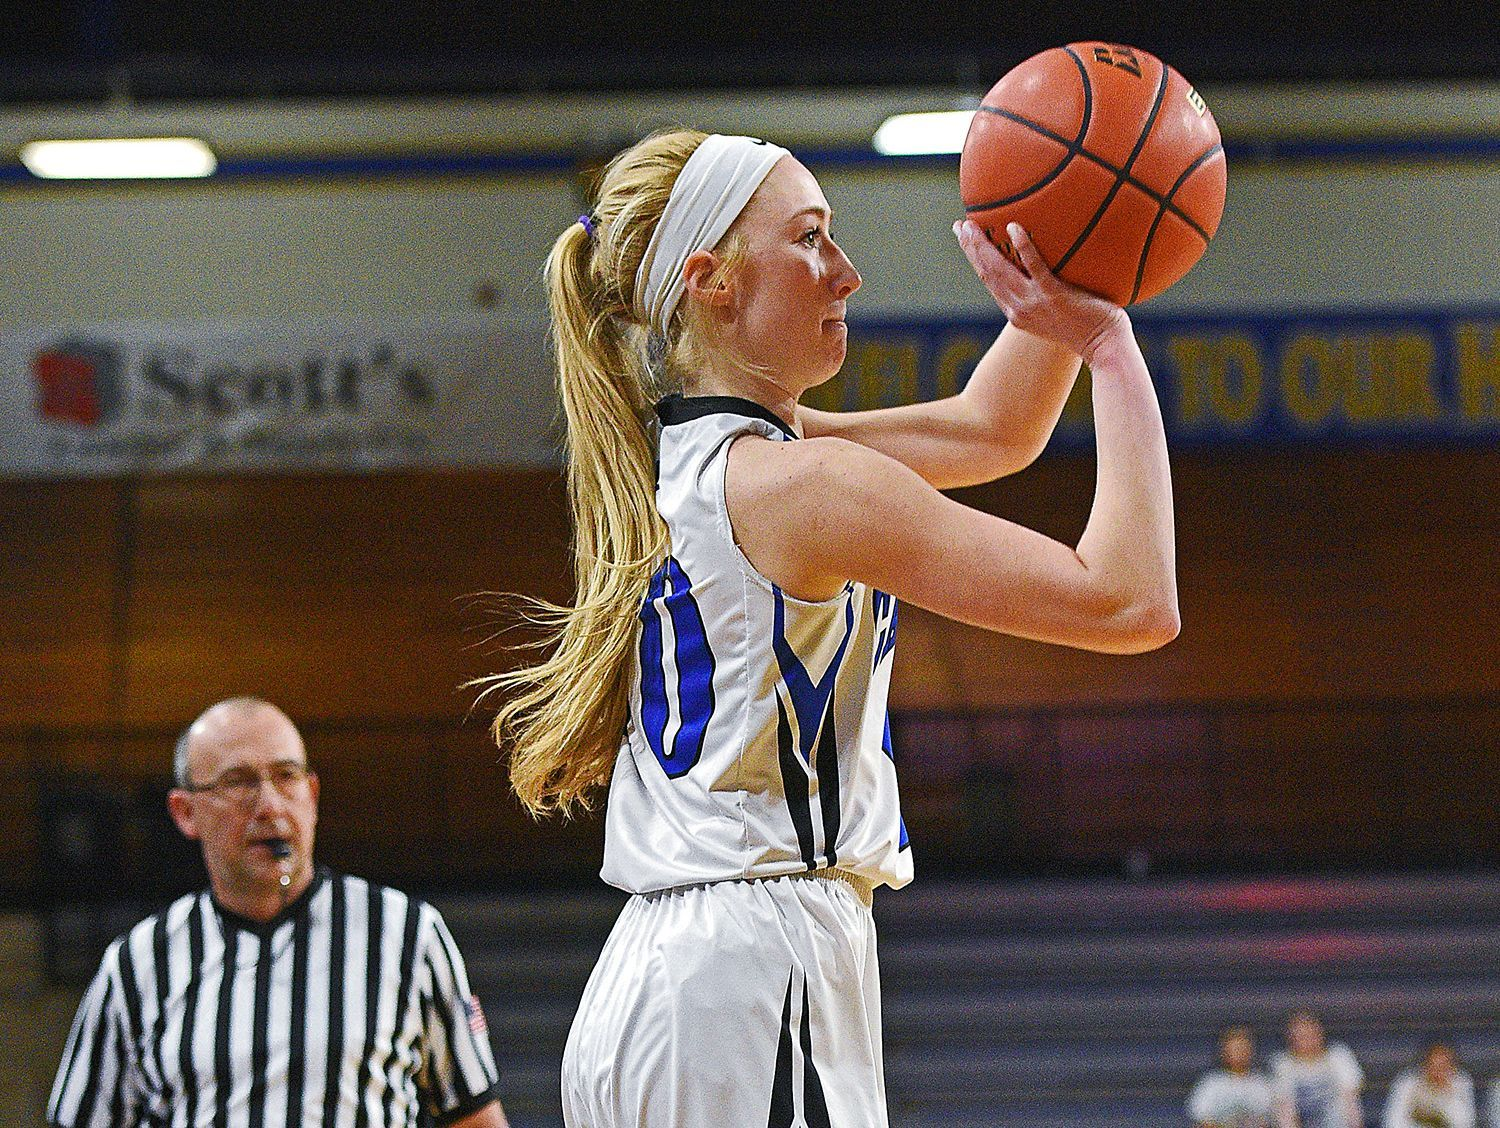 St. Thomas More's Dru Gylten (10) takes a shot during a 2017 SDHSAA Class A State Girls Basketball Tournament quarterfinal game against Madison Thursday, March 9, 2017, at Frost Arena on the South Dakota State University campus in Brookings, S.D. St. Thomas More beat Madison 57-32.